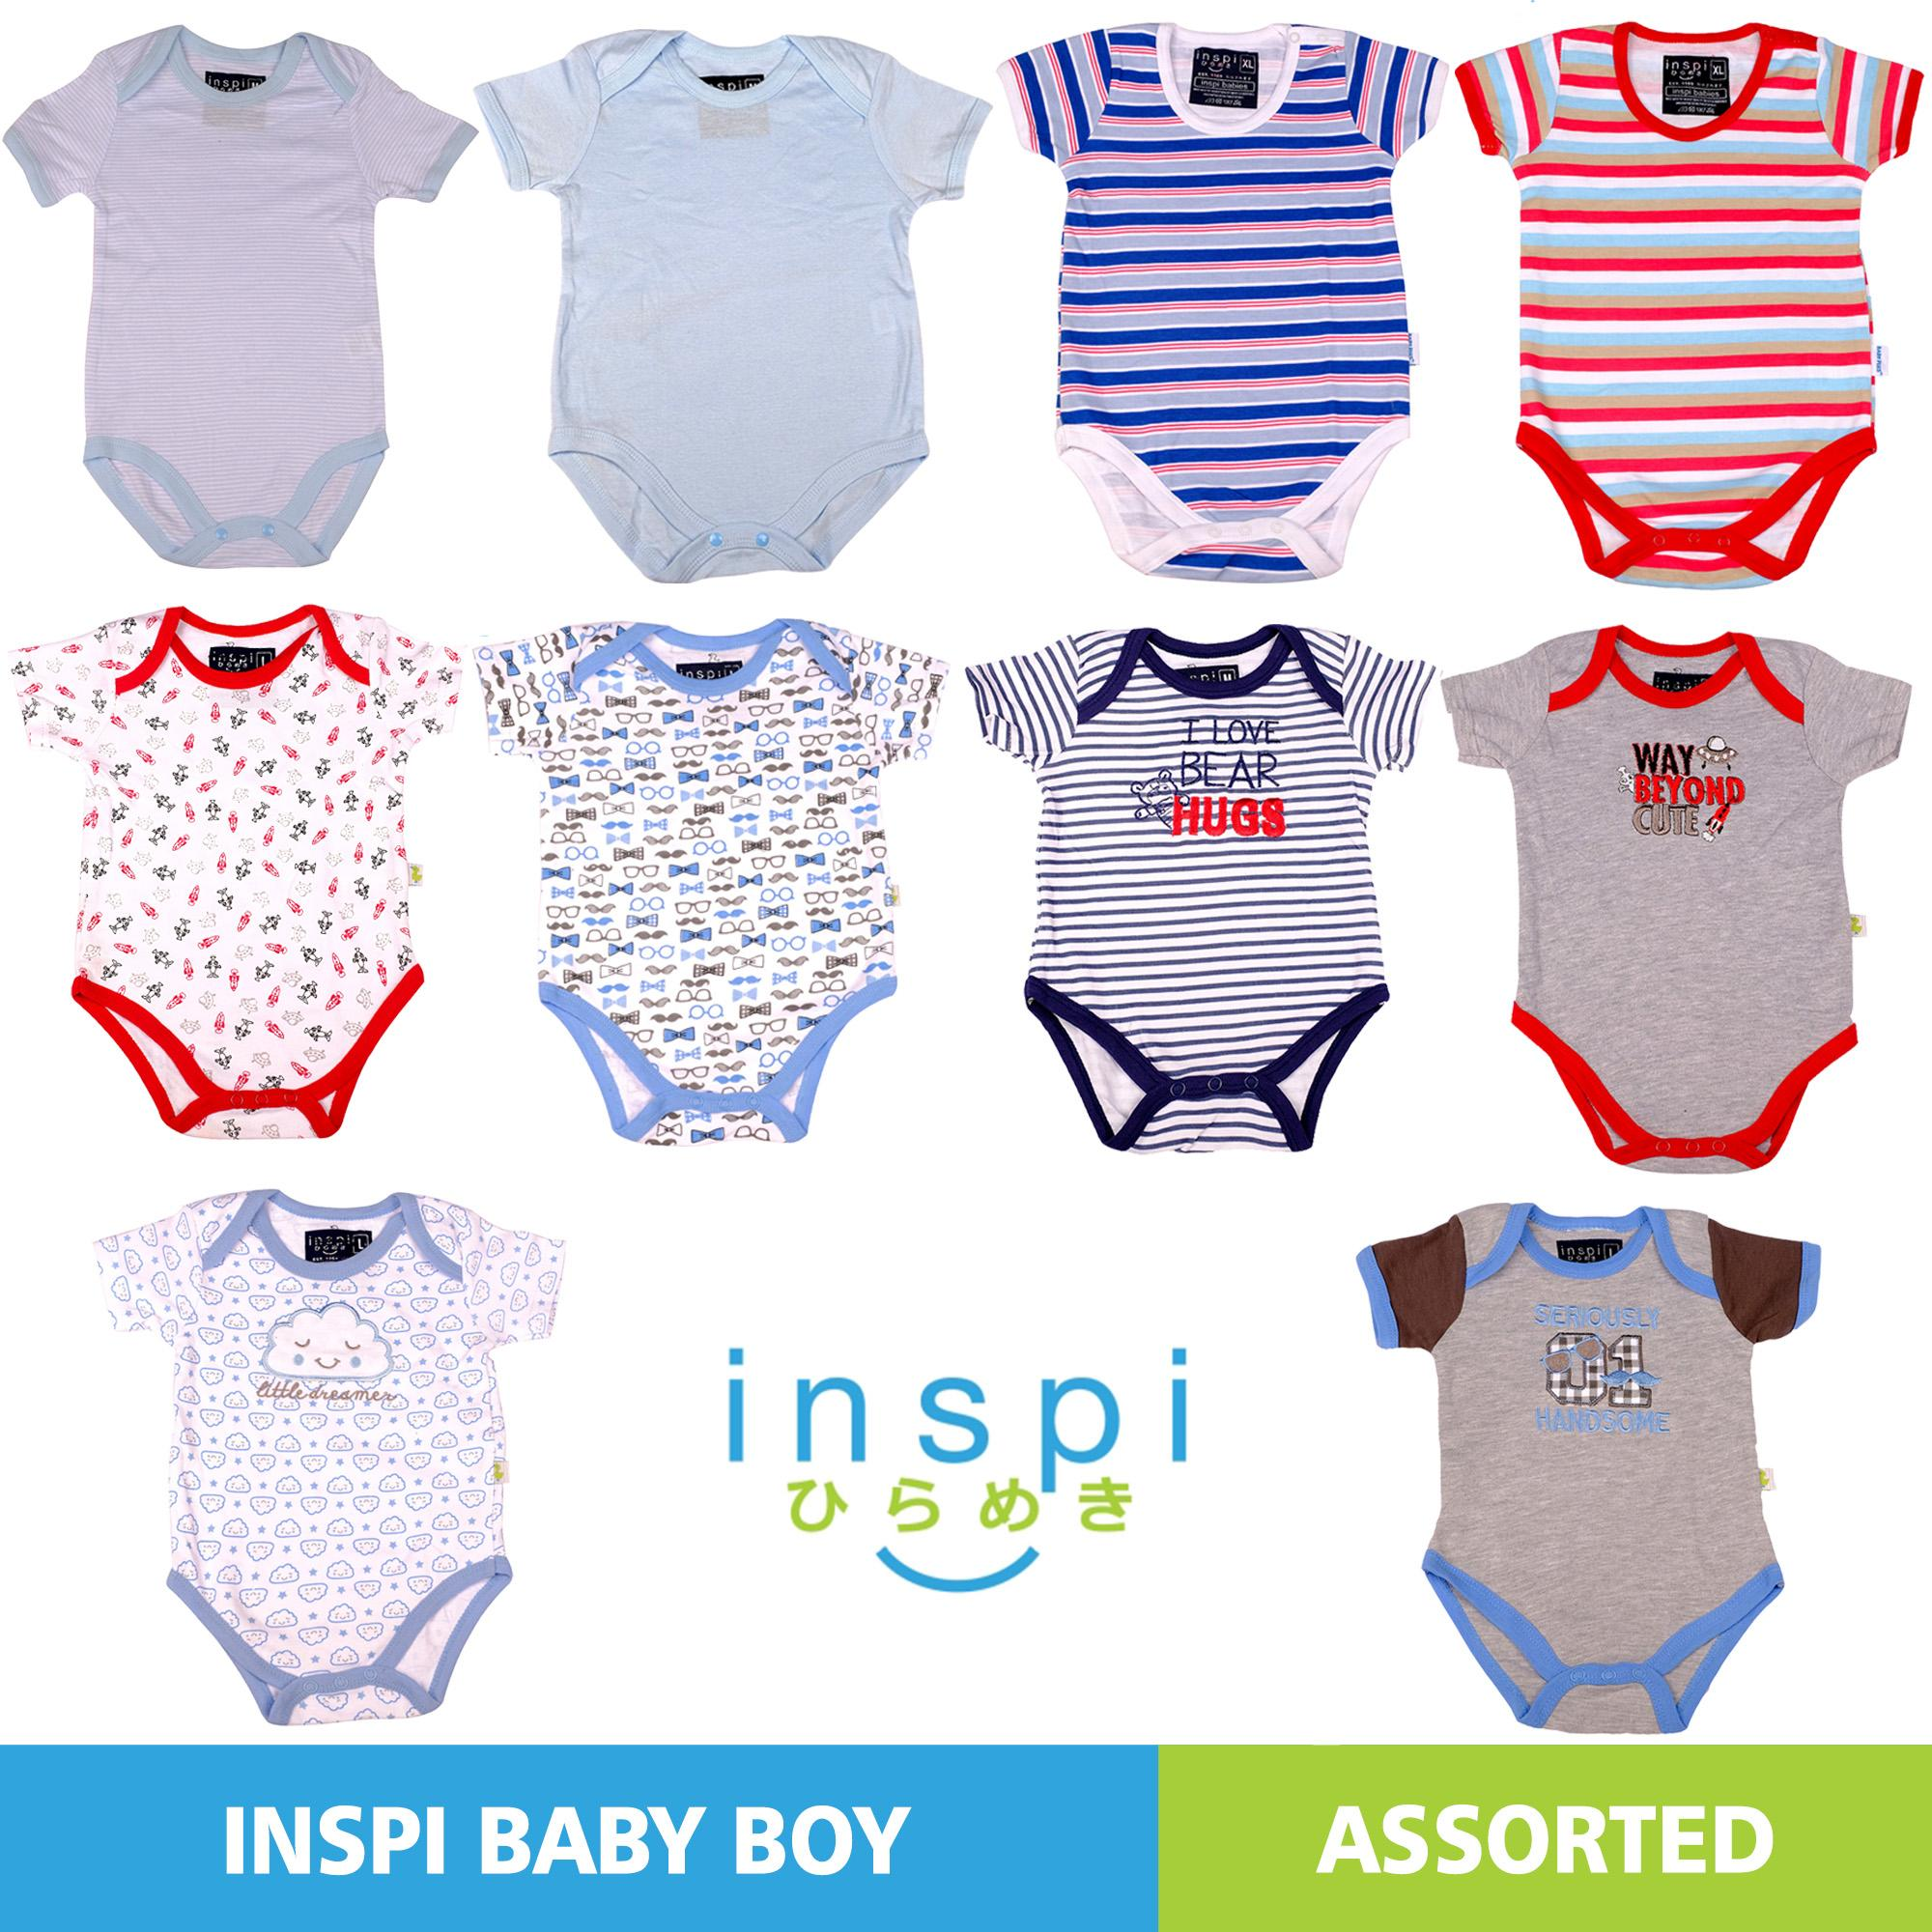 ed6bb27d6f962 INSPI Babies Boys ASSORTED (Set of 2) 100% Cotton Onesies Newborn Infant  Quality